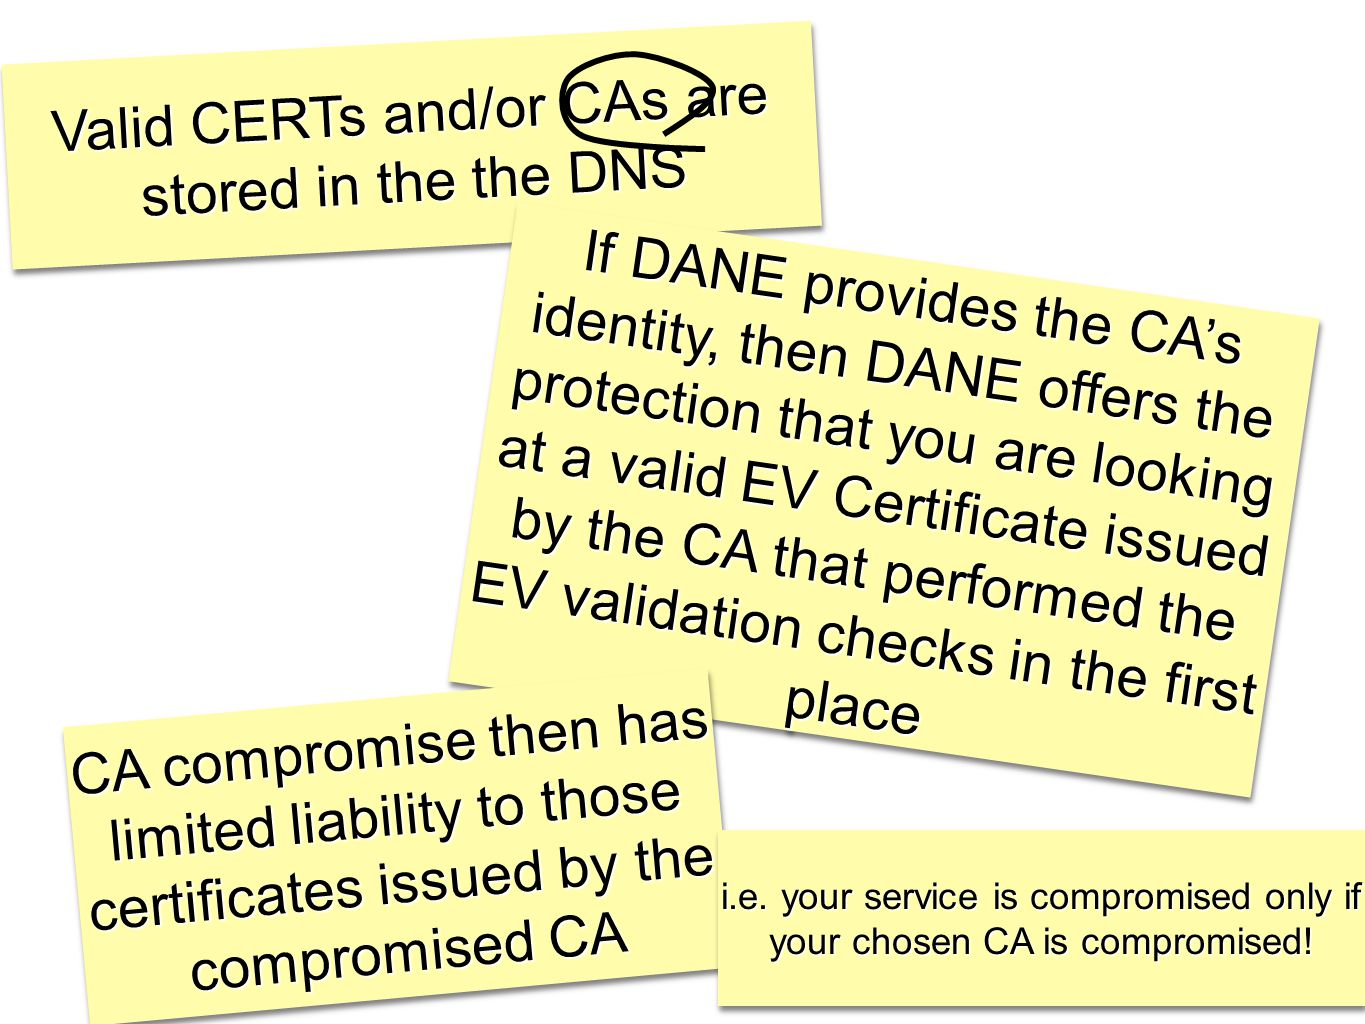 Valid CERTs and/or CAs are stored in the the DNS If DANE provides the CA's identity, then DANE offers the protection that you are looking at a valid E